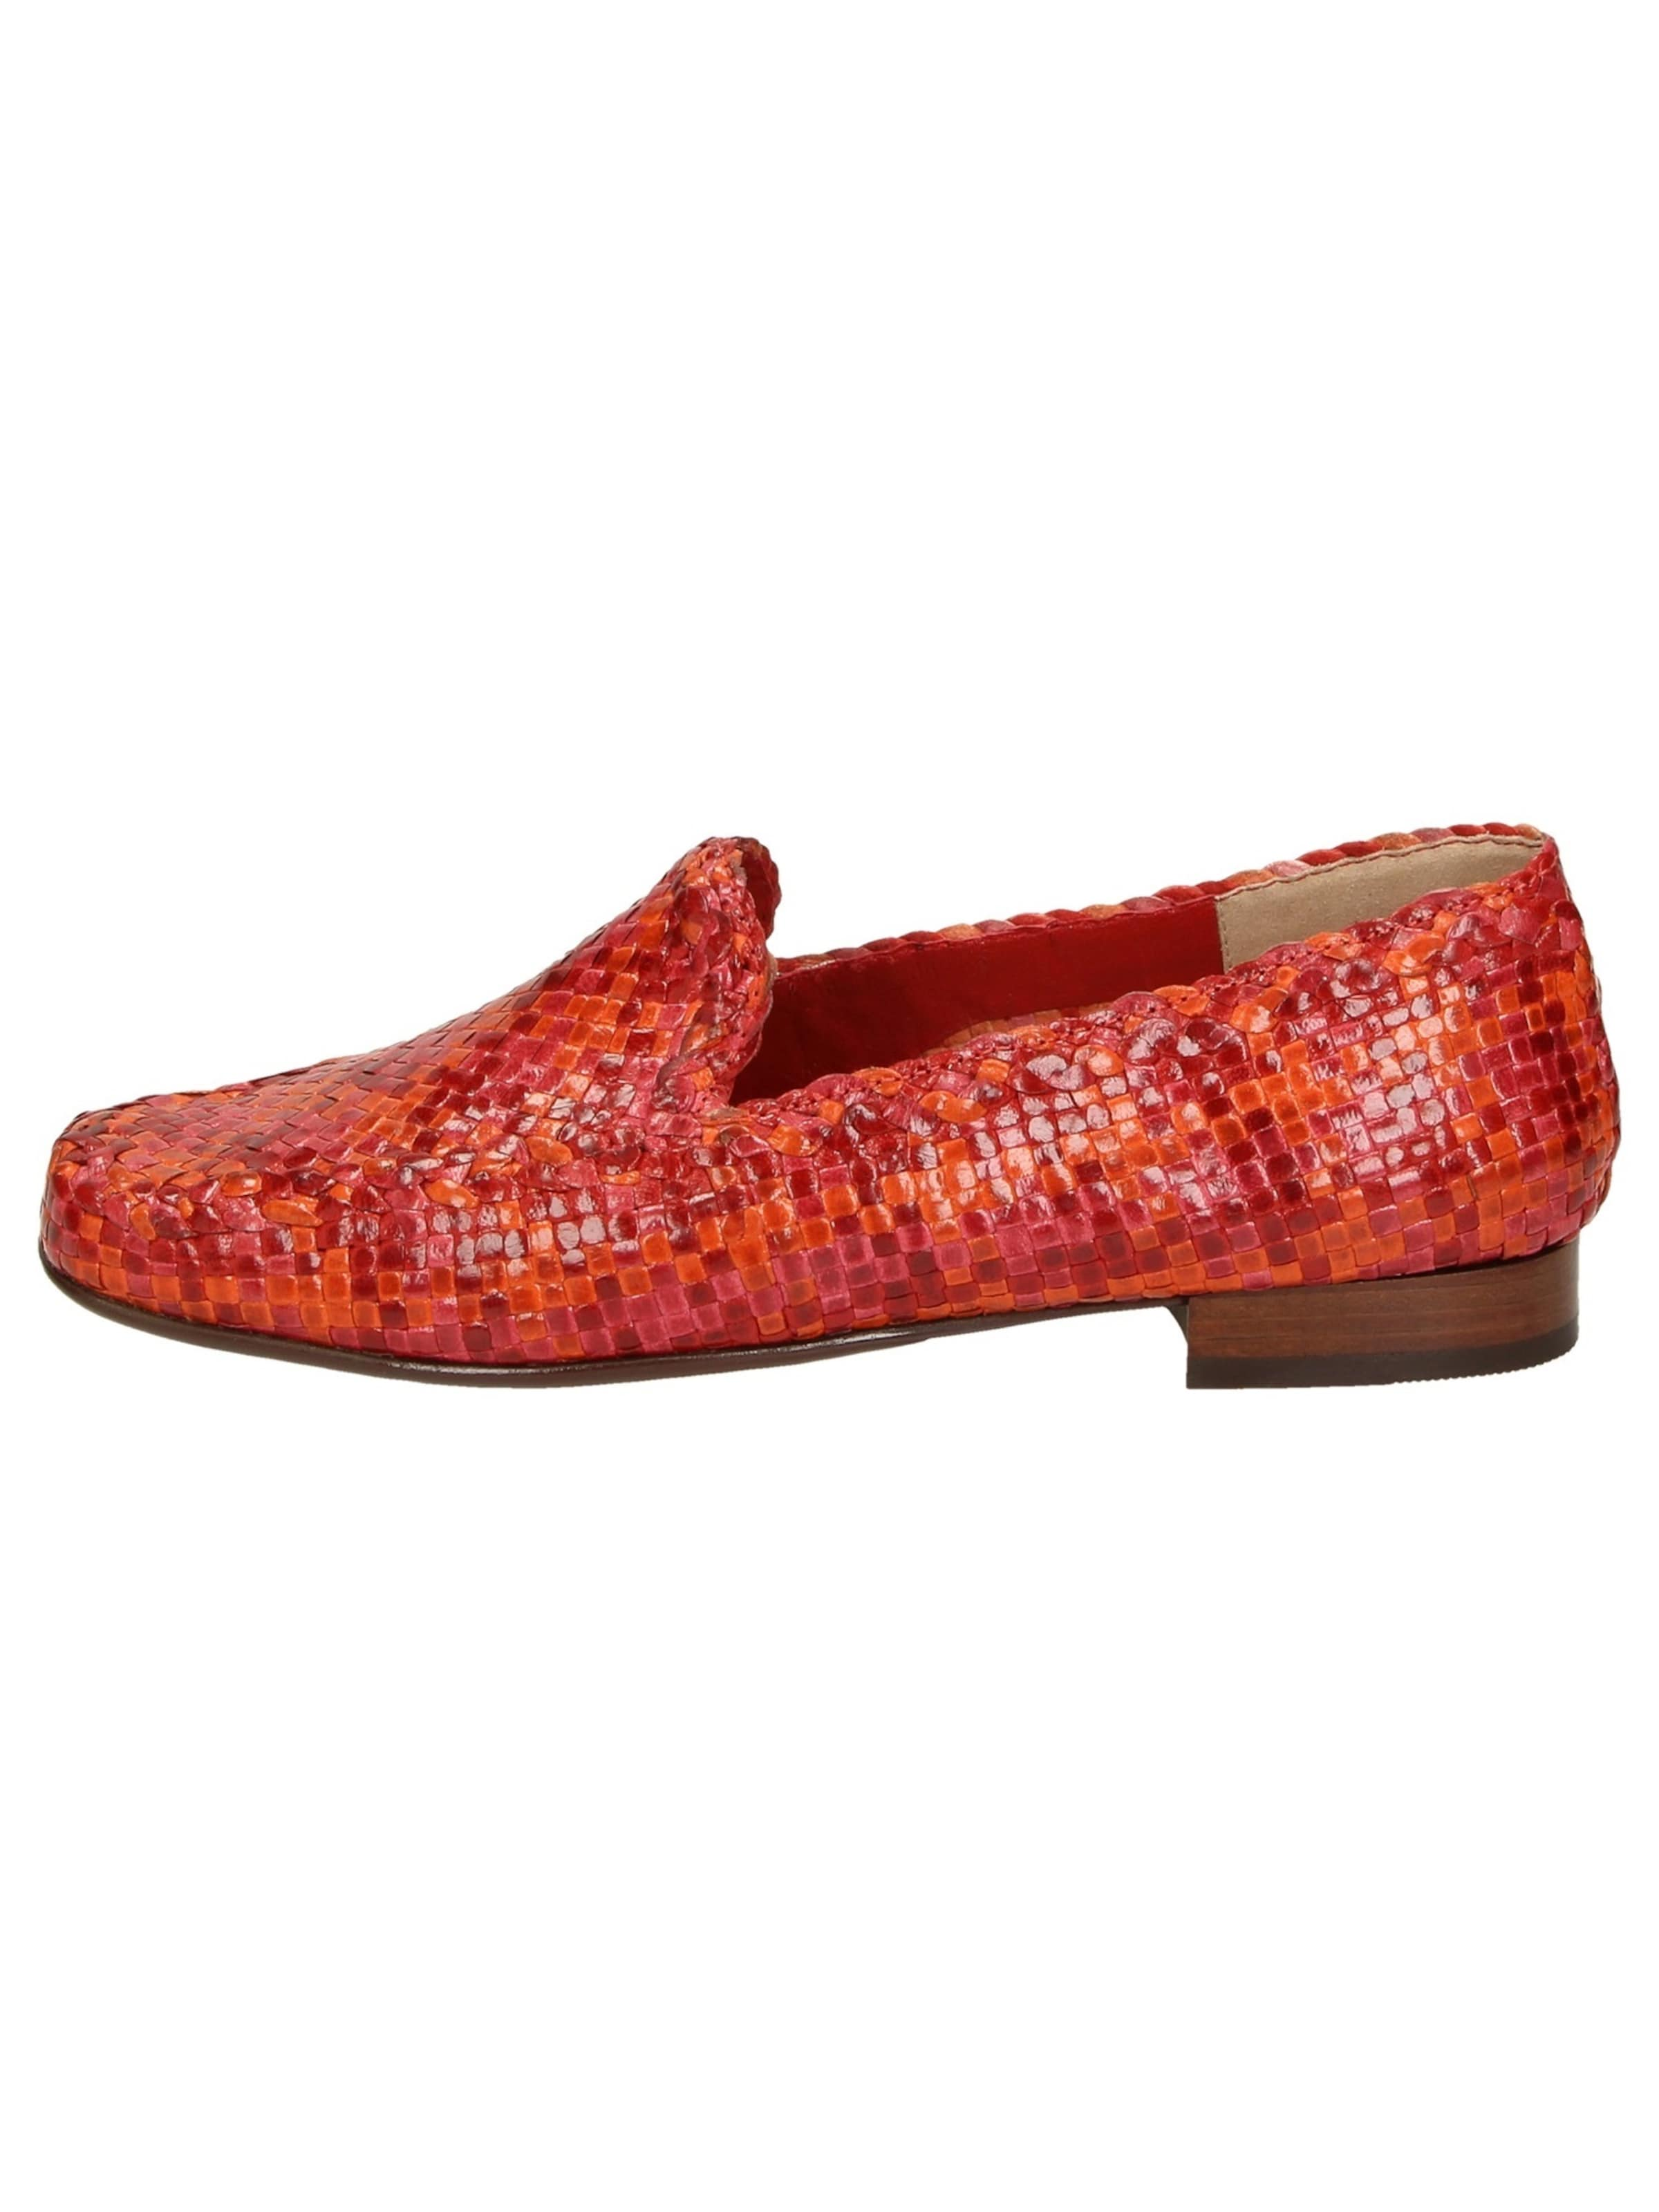 Slipper In Sioux Orangerot Slipper 'cordera' Sioux rBtQhsodCx